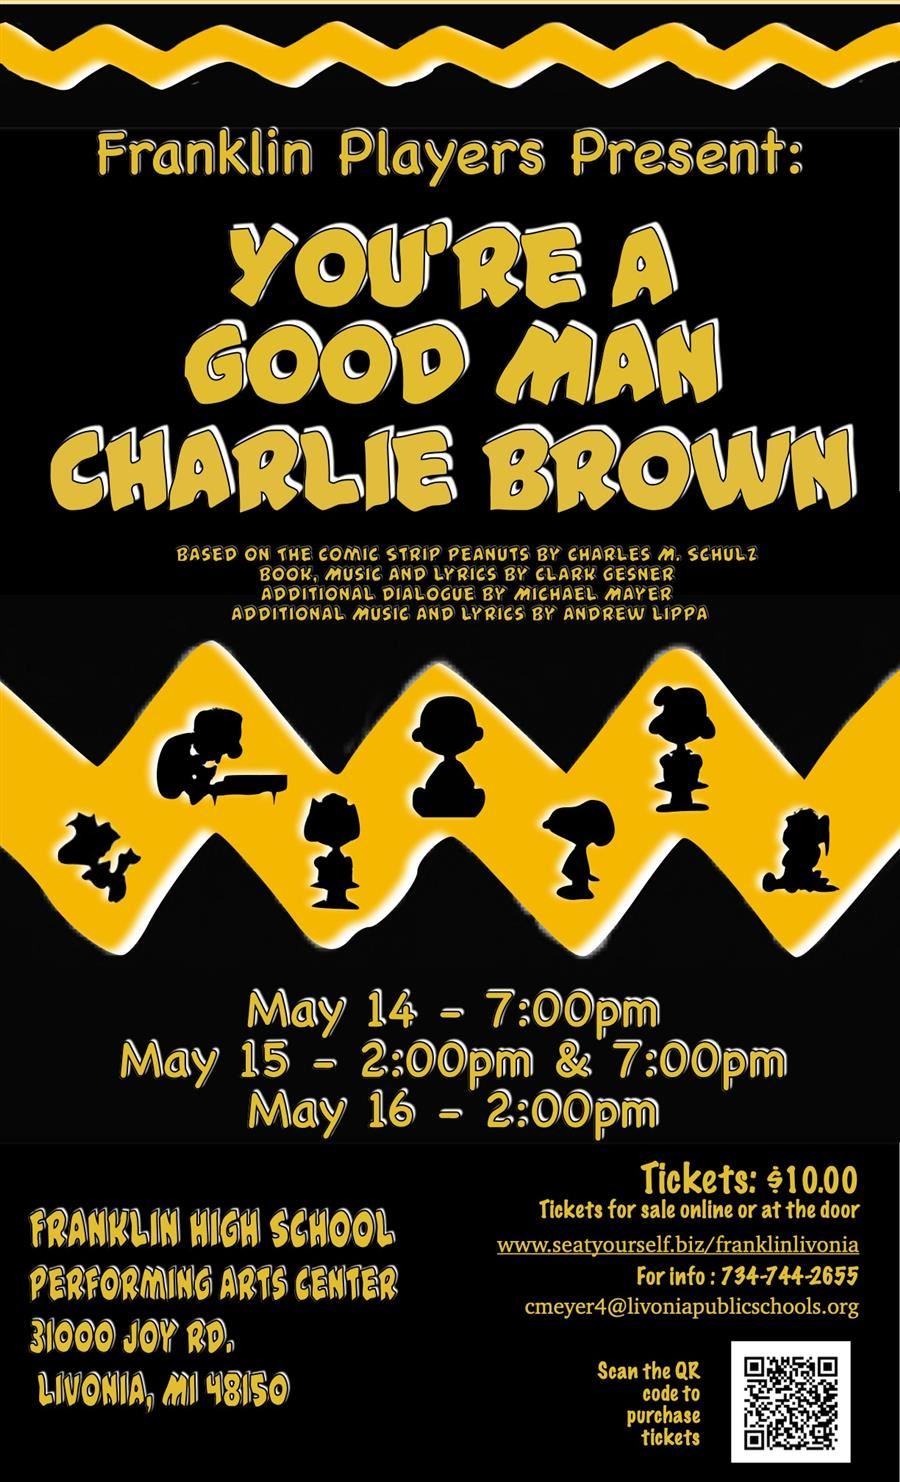 Franklin Players Present: You're A Good Man Charlie Brown